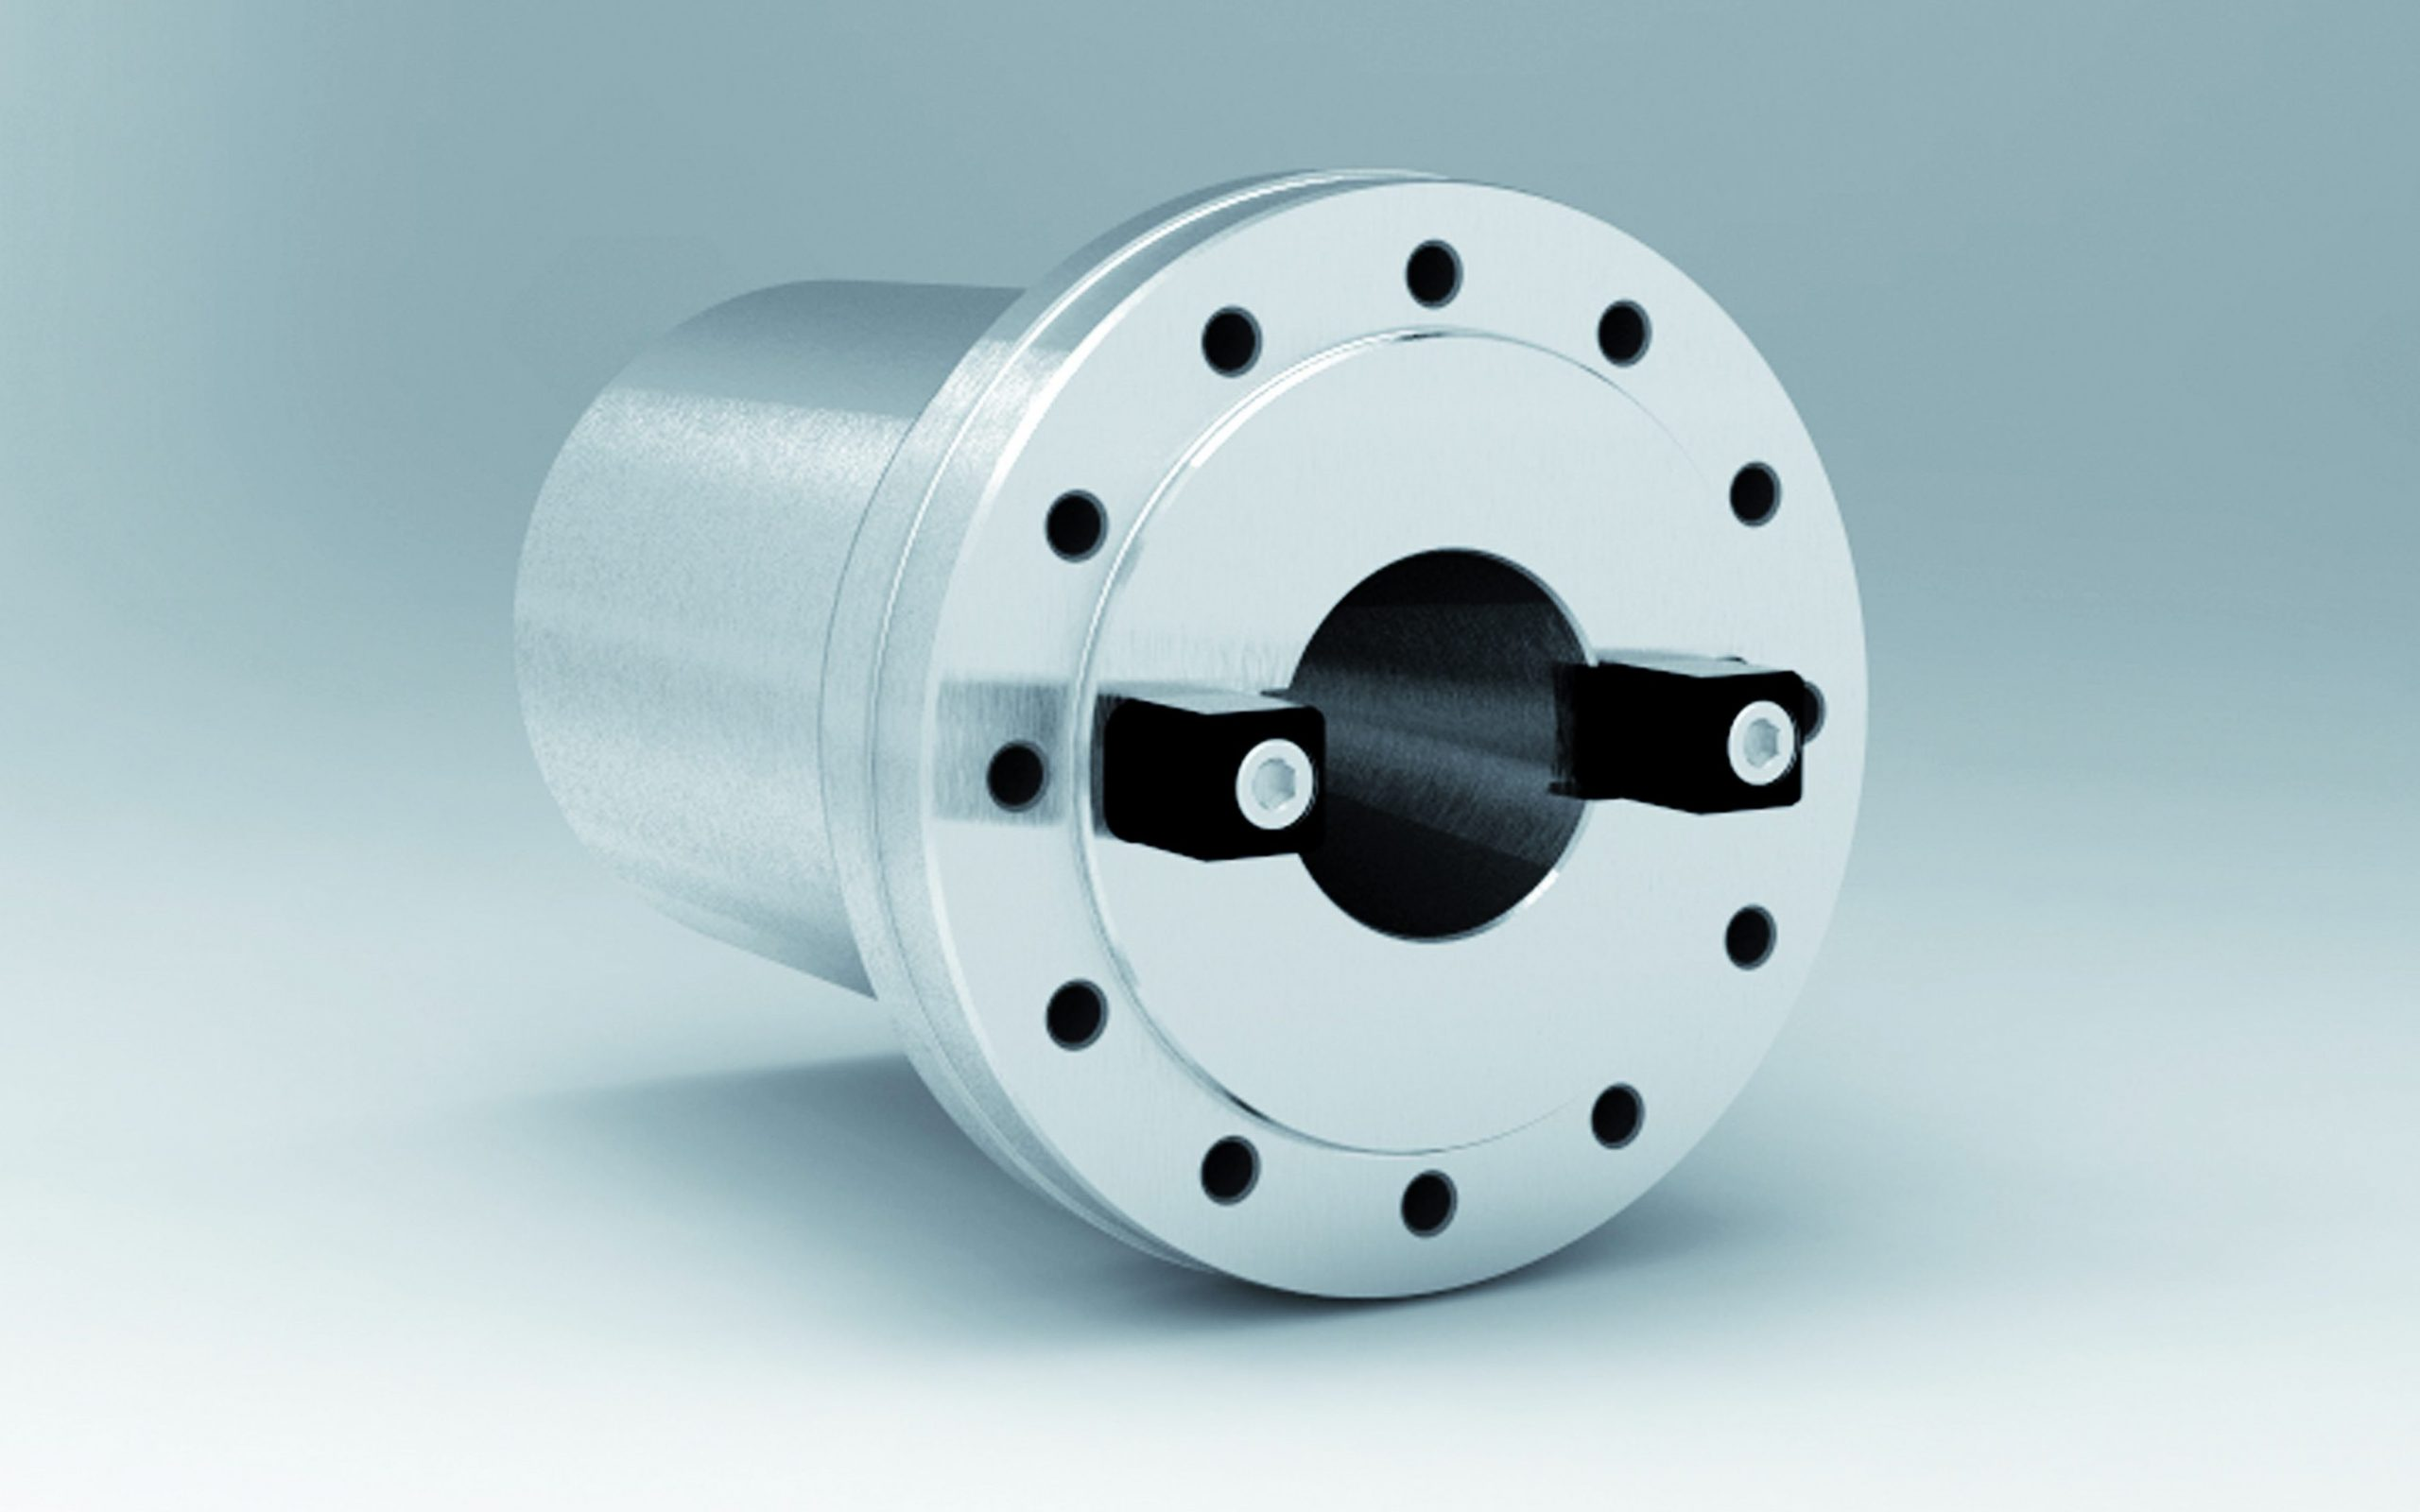 RWNC-Accessories spindle holders